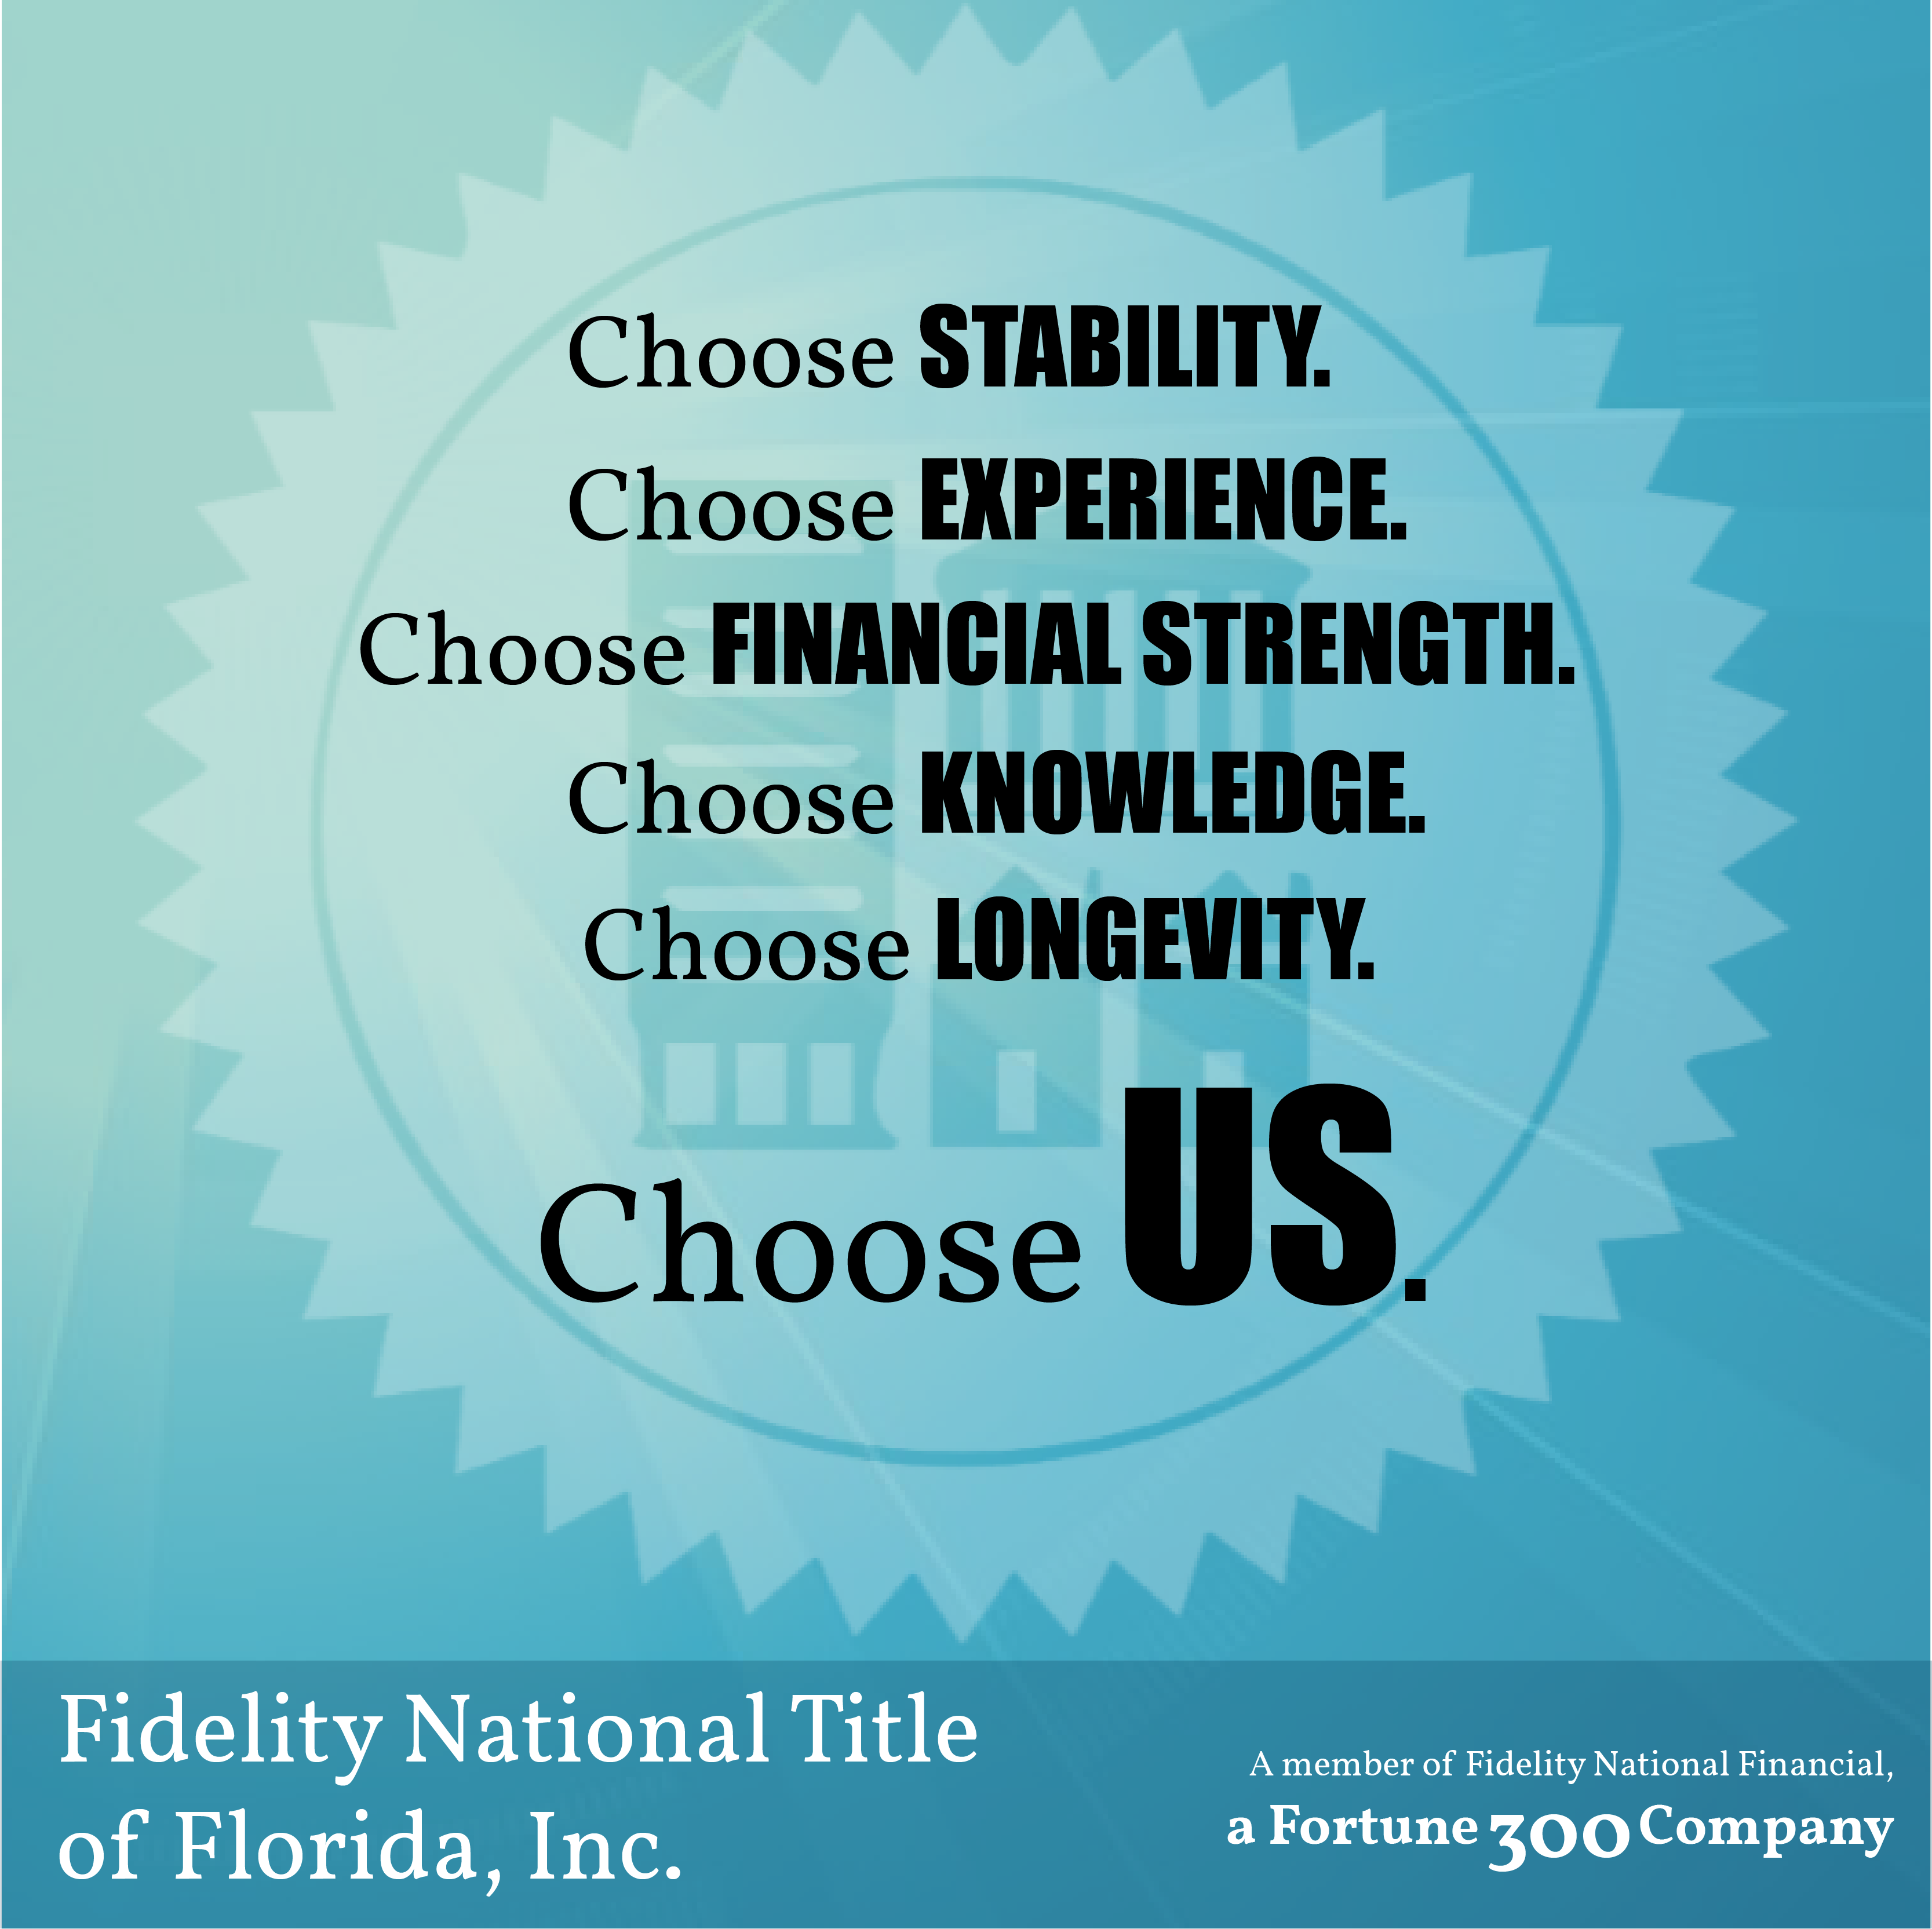 Fidelitynationaltitle Is A Member Of Fidelity National Financial